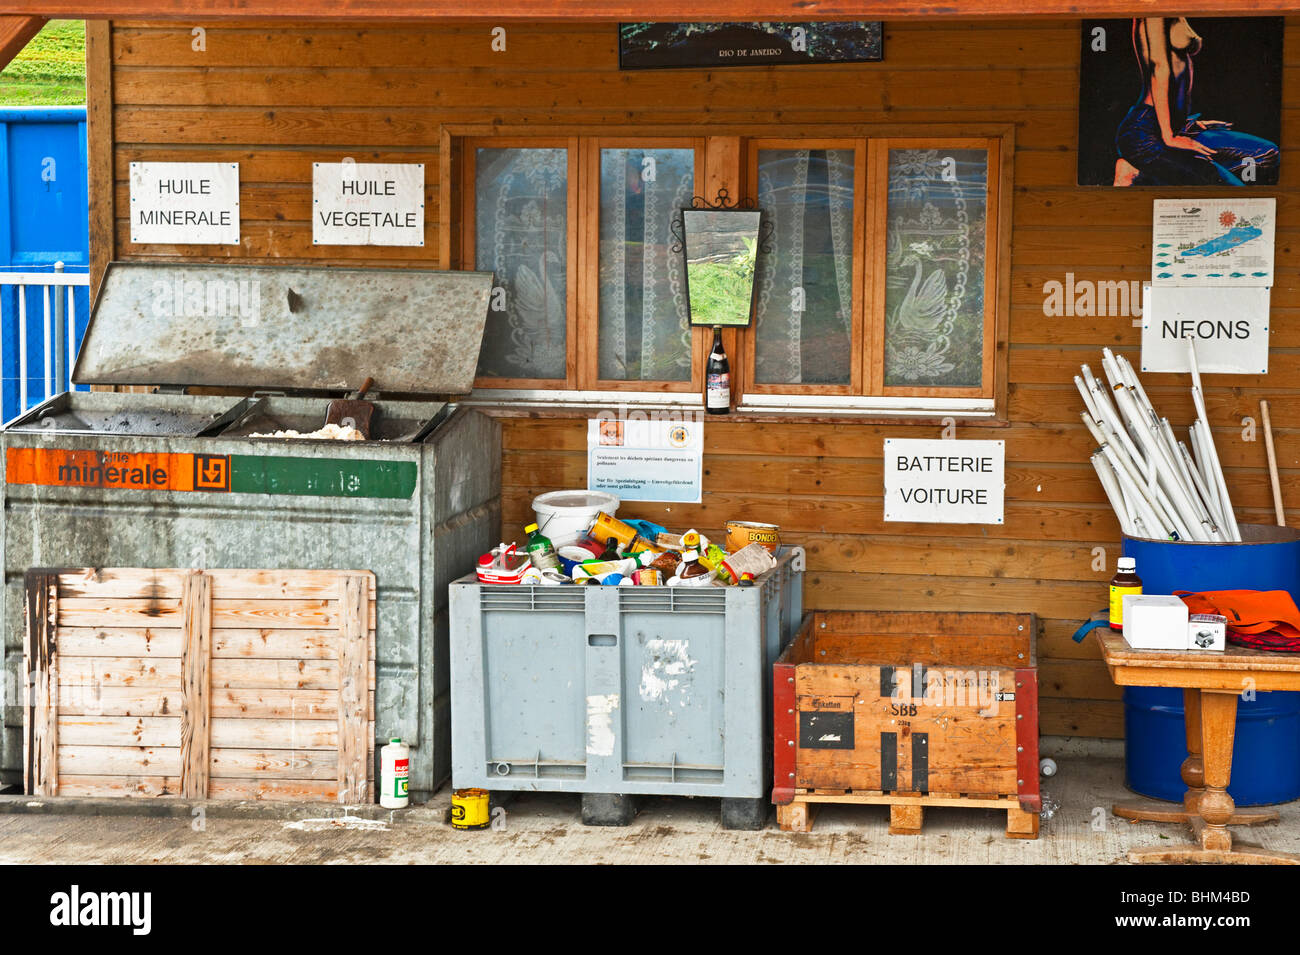 A Swiss recycling centre - Stock Image